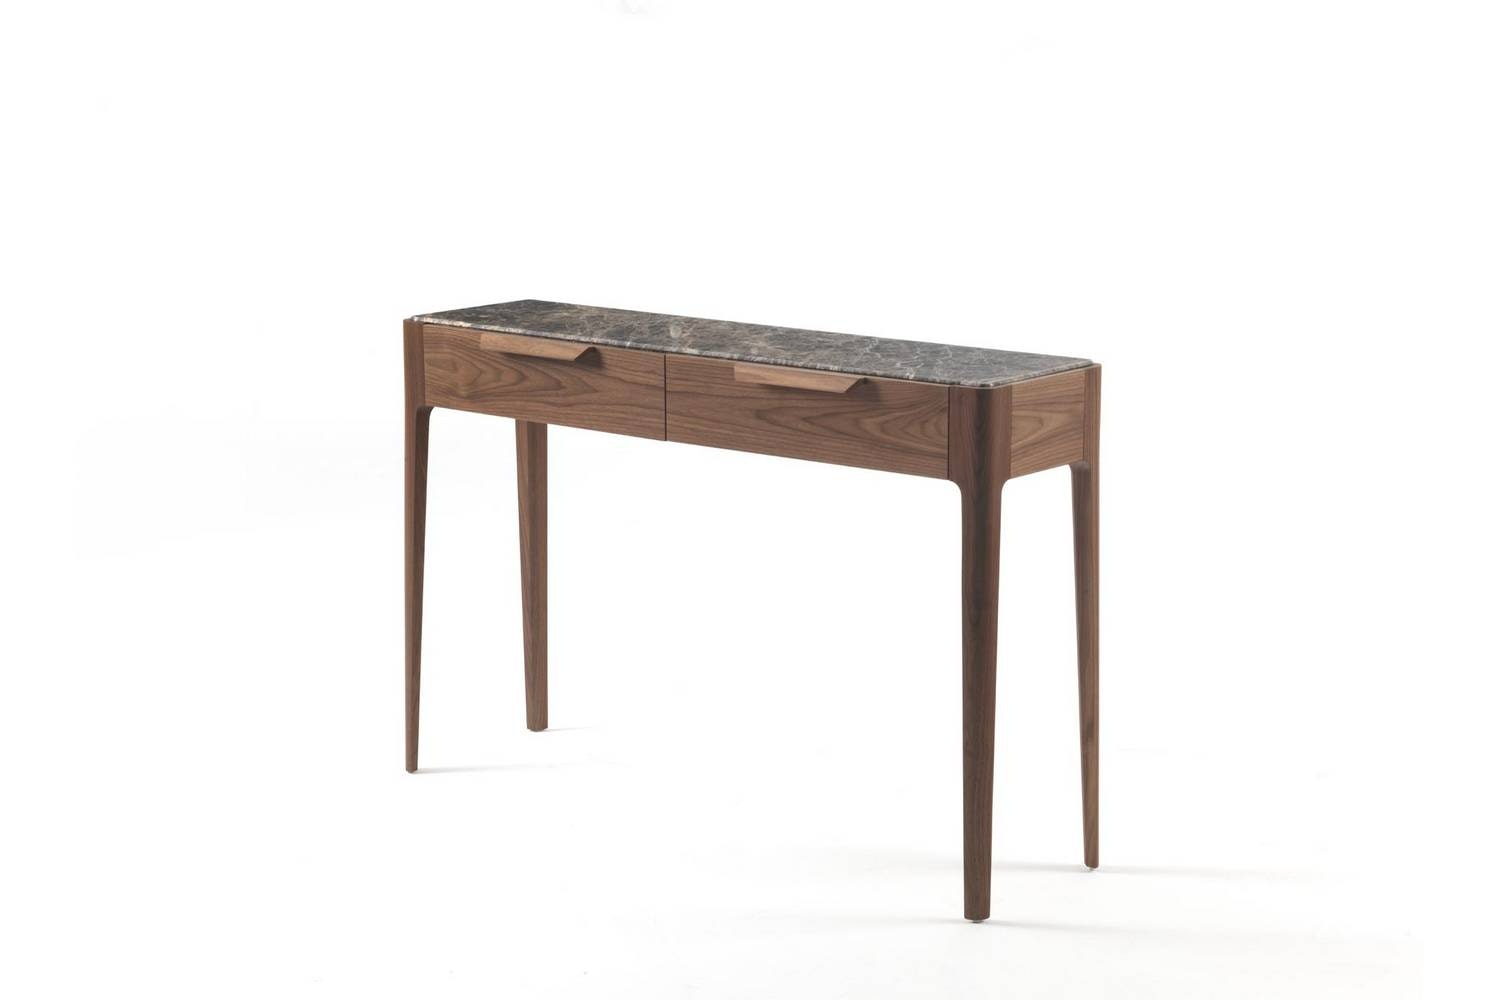 Ziggy Console Table by C. Ballabio for Porada